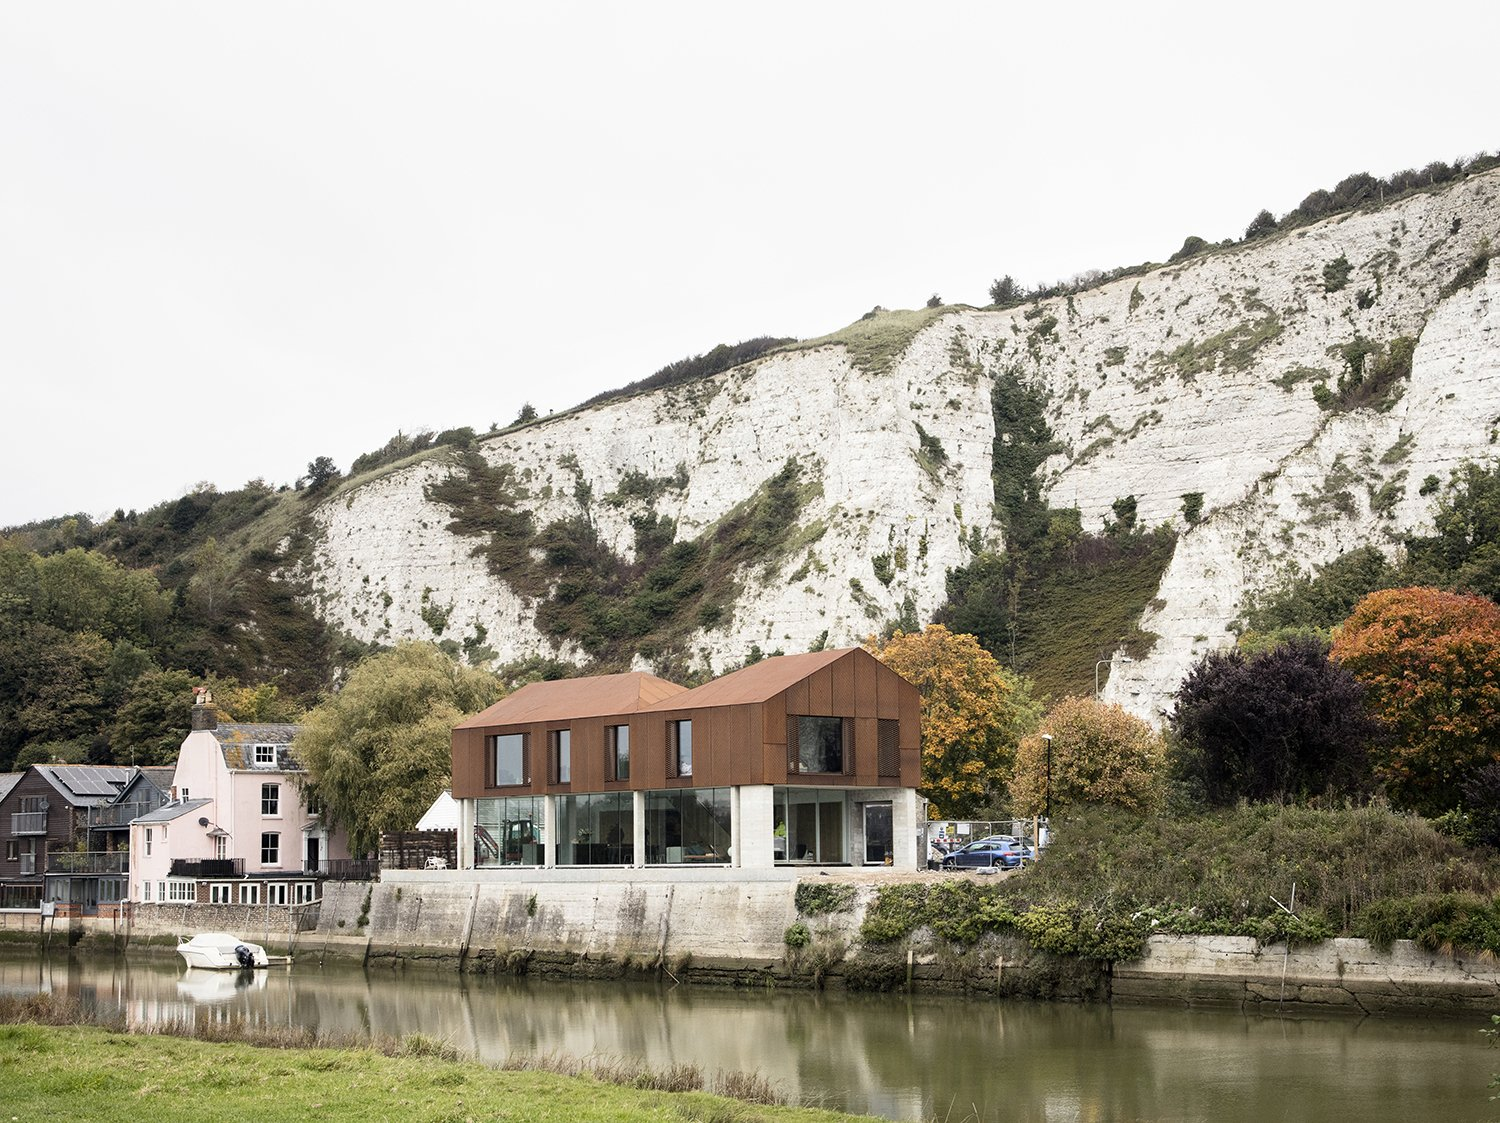 Sandy Rendel Architects replaced an old workshop with a striking new home in Lewes, East Sussex, England. The structure is located right at the edge of the town, in a spot that formerly functioned as a wharf to an adjacent quarry. Due to its prominent siting, the planning authority wanted to see a bold design that would signal the town's entrance. The building shell, made of SIPS, was prefabricated offsite, allowing for significant time savings in construction.